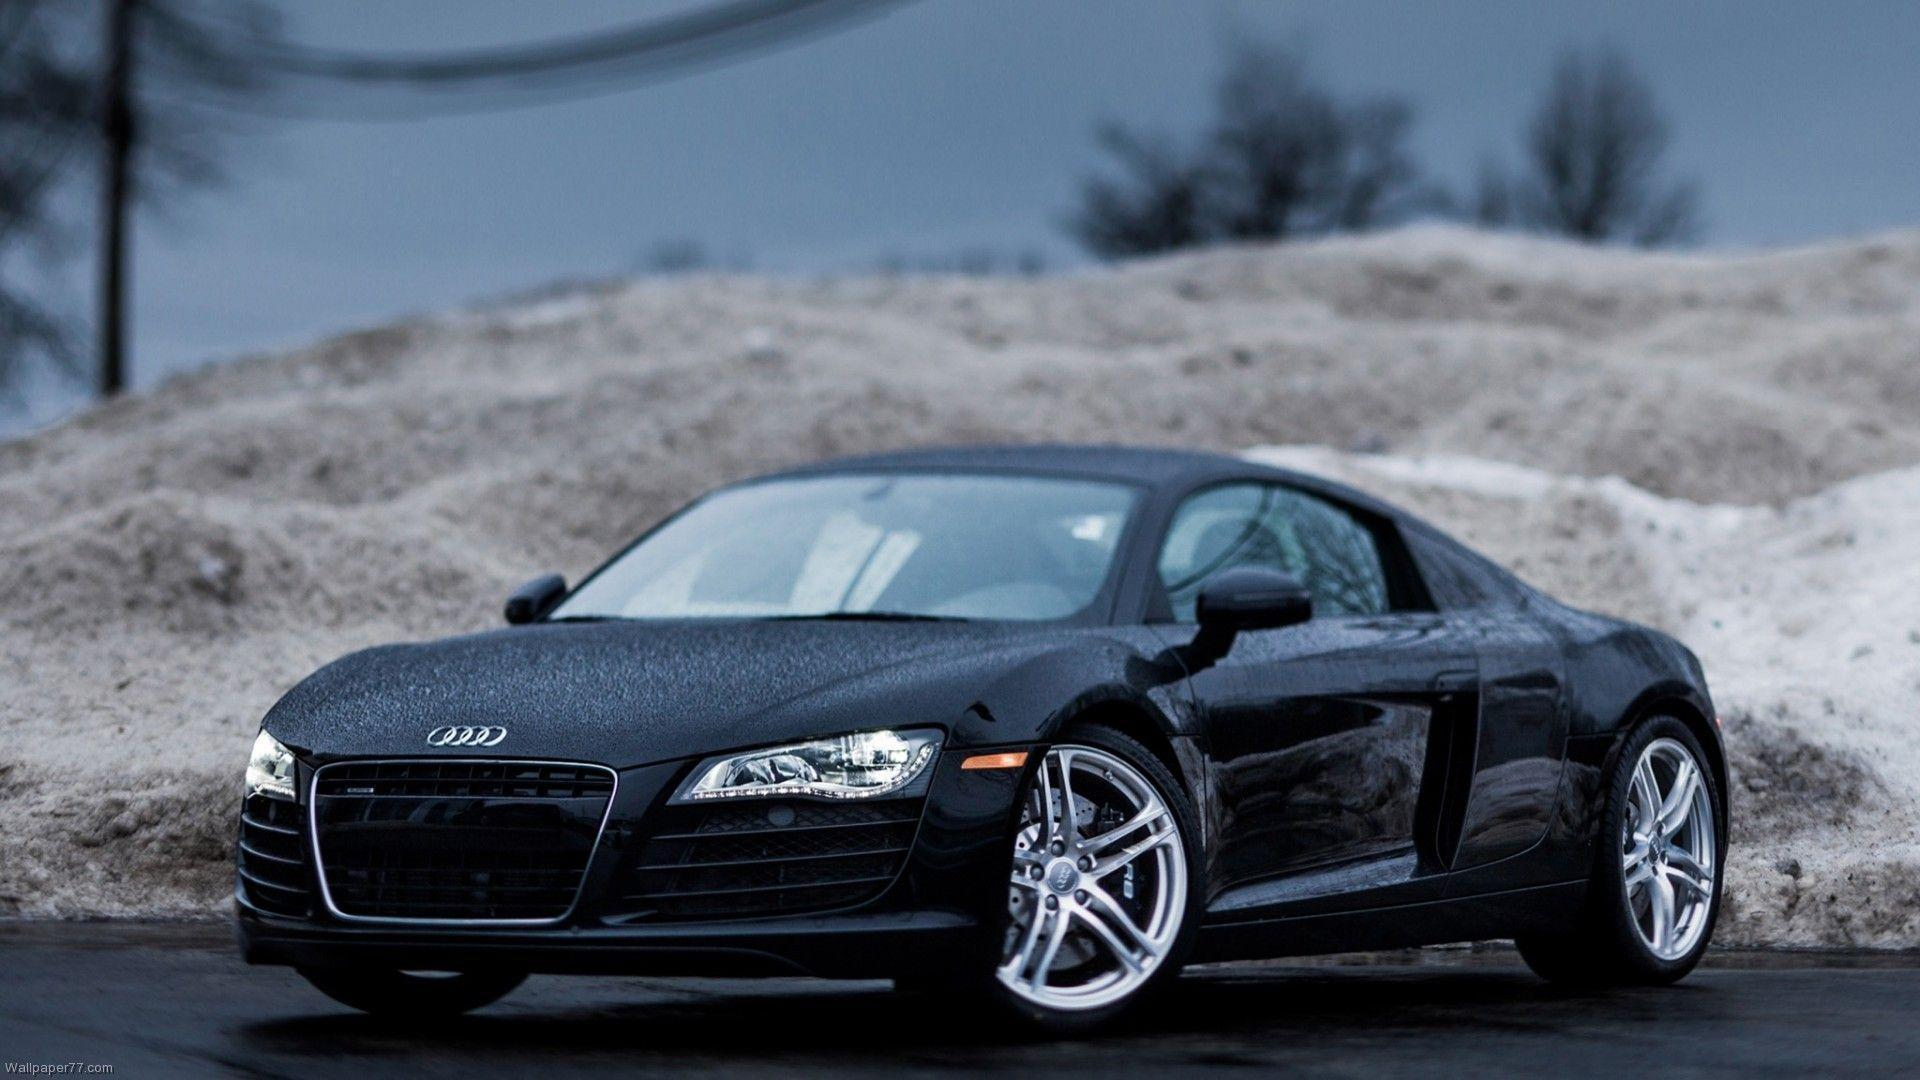 beautiful audi car new - photo #21